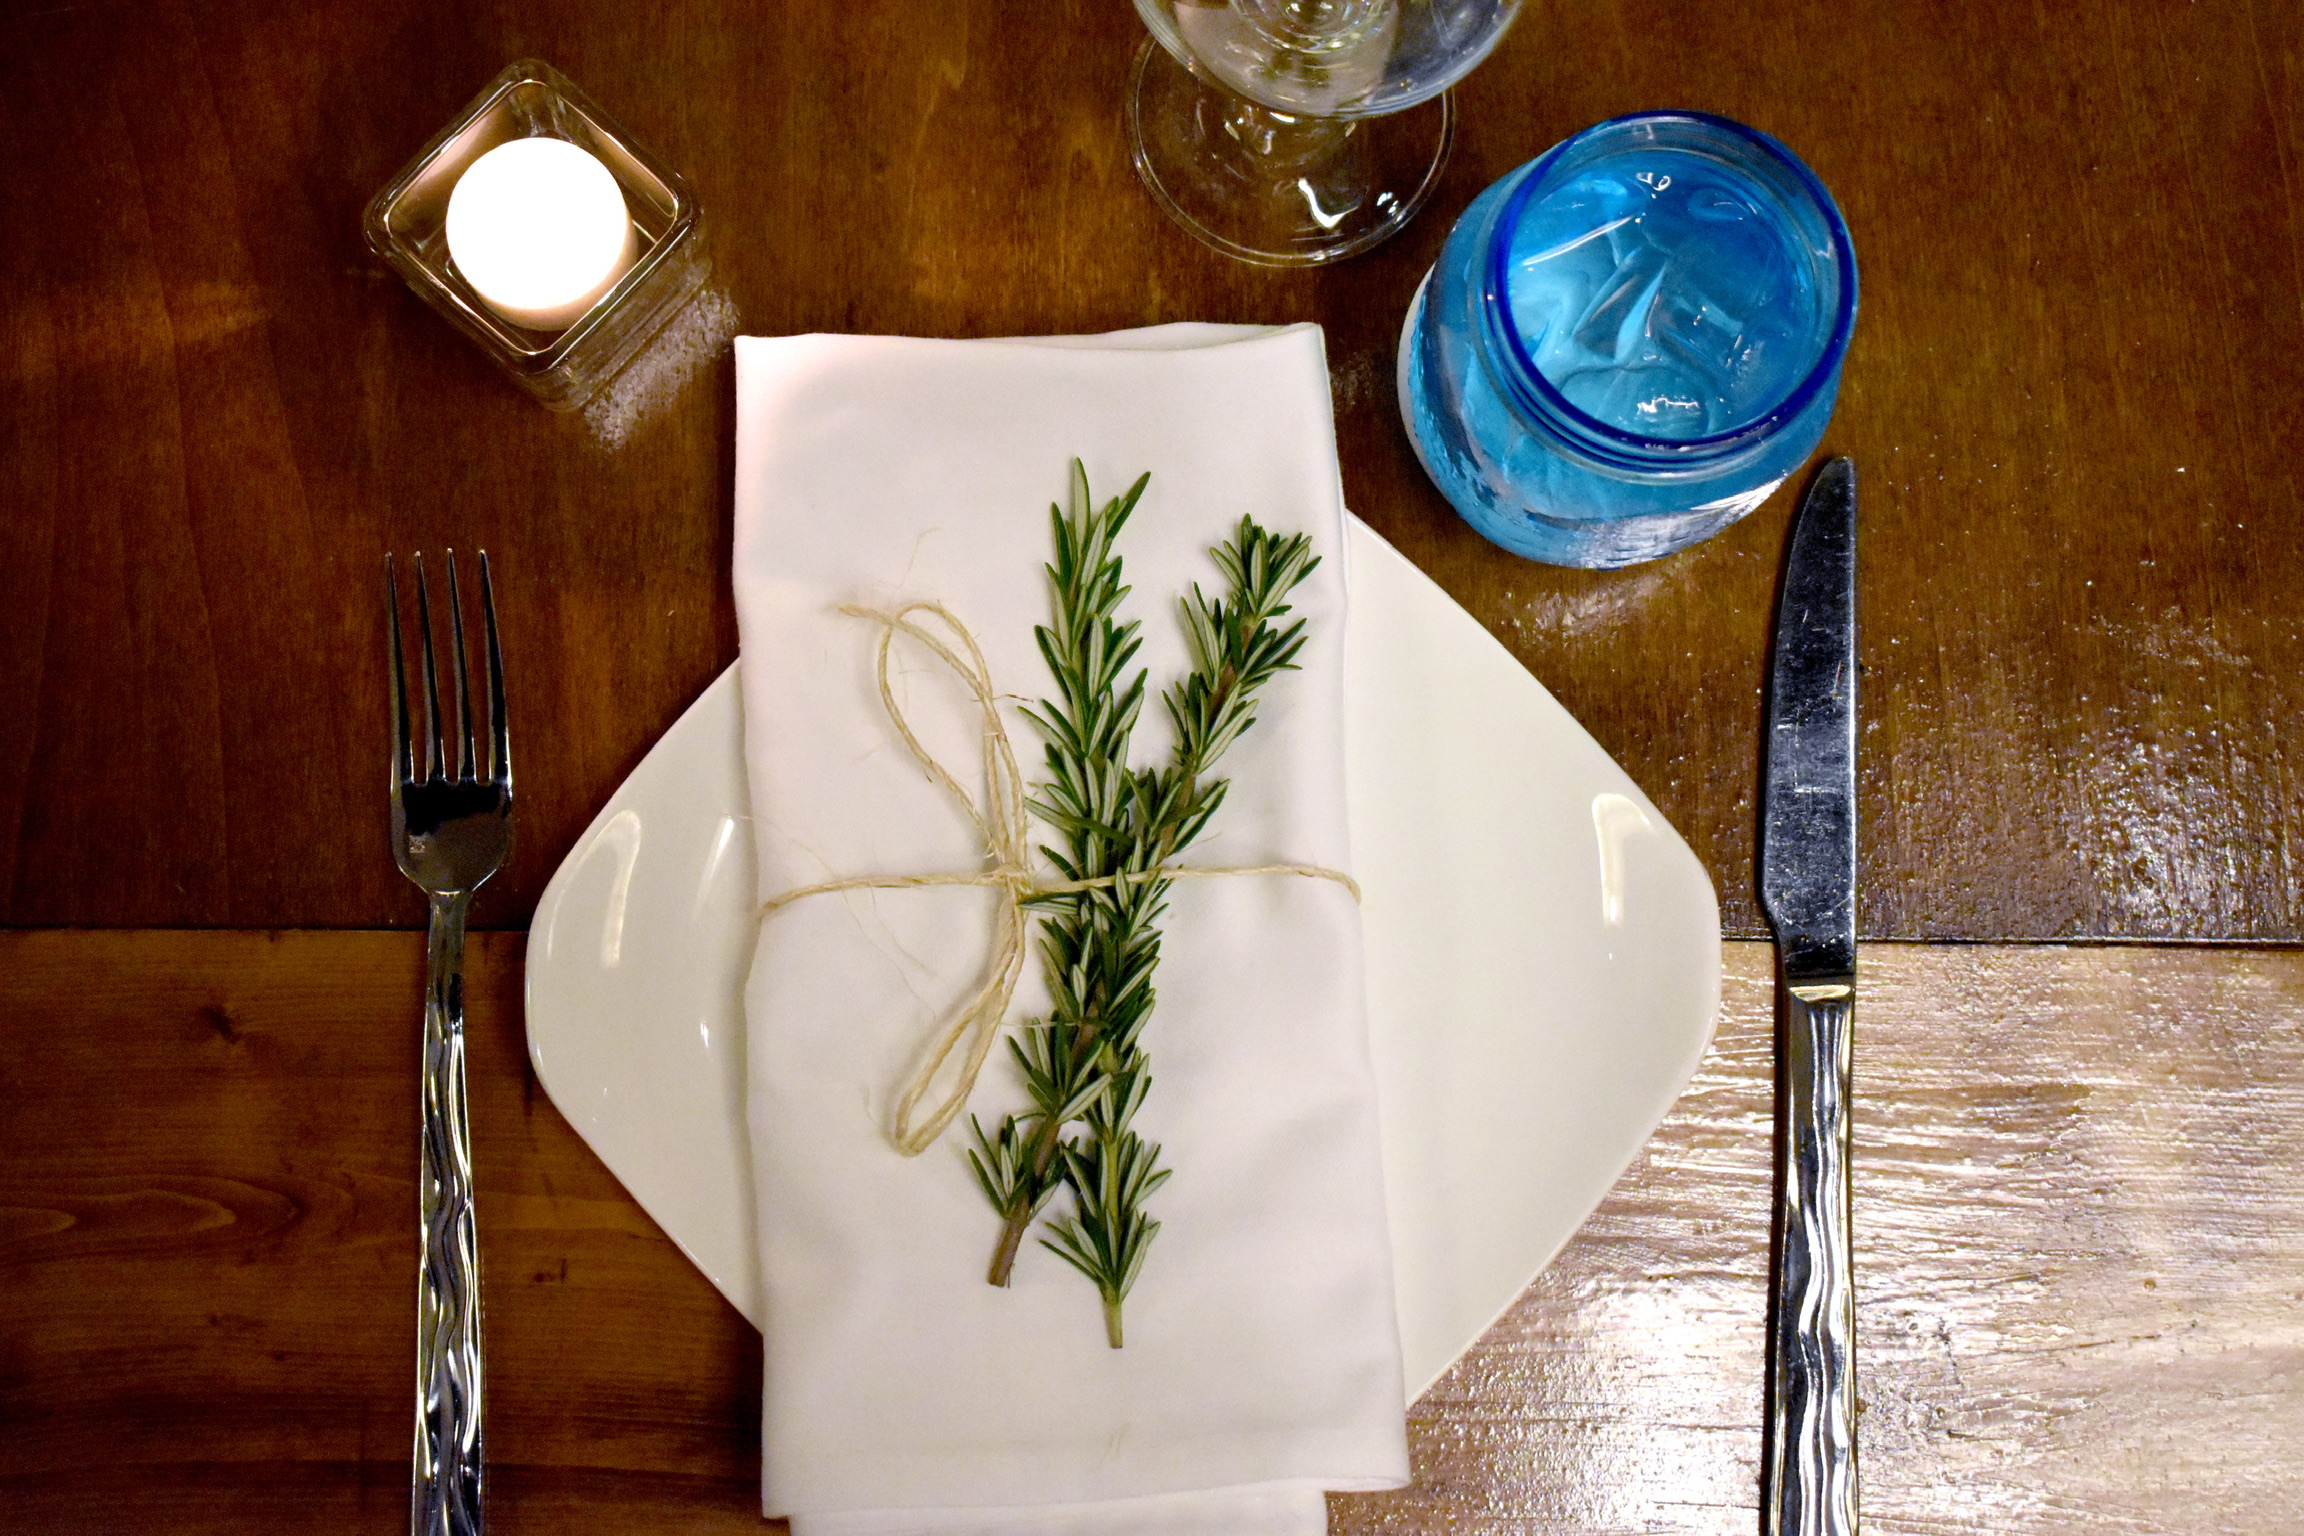 Tablesetting with fresh rosemary